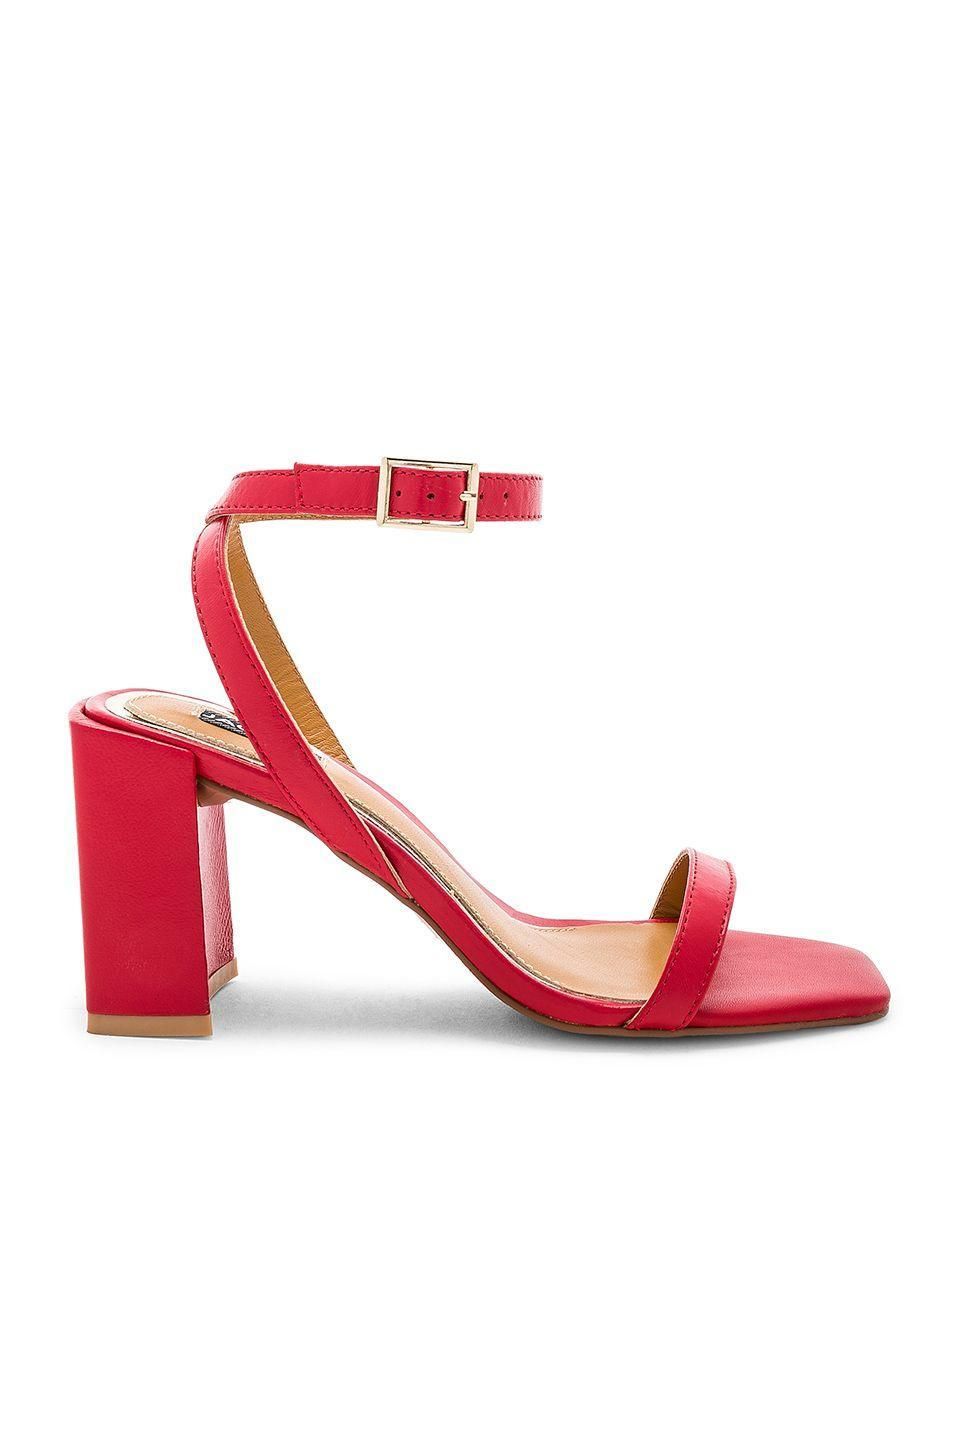 Available in sizes 36 to 40.